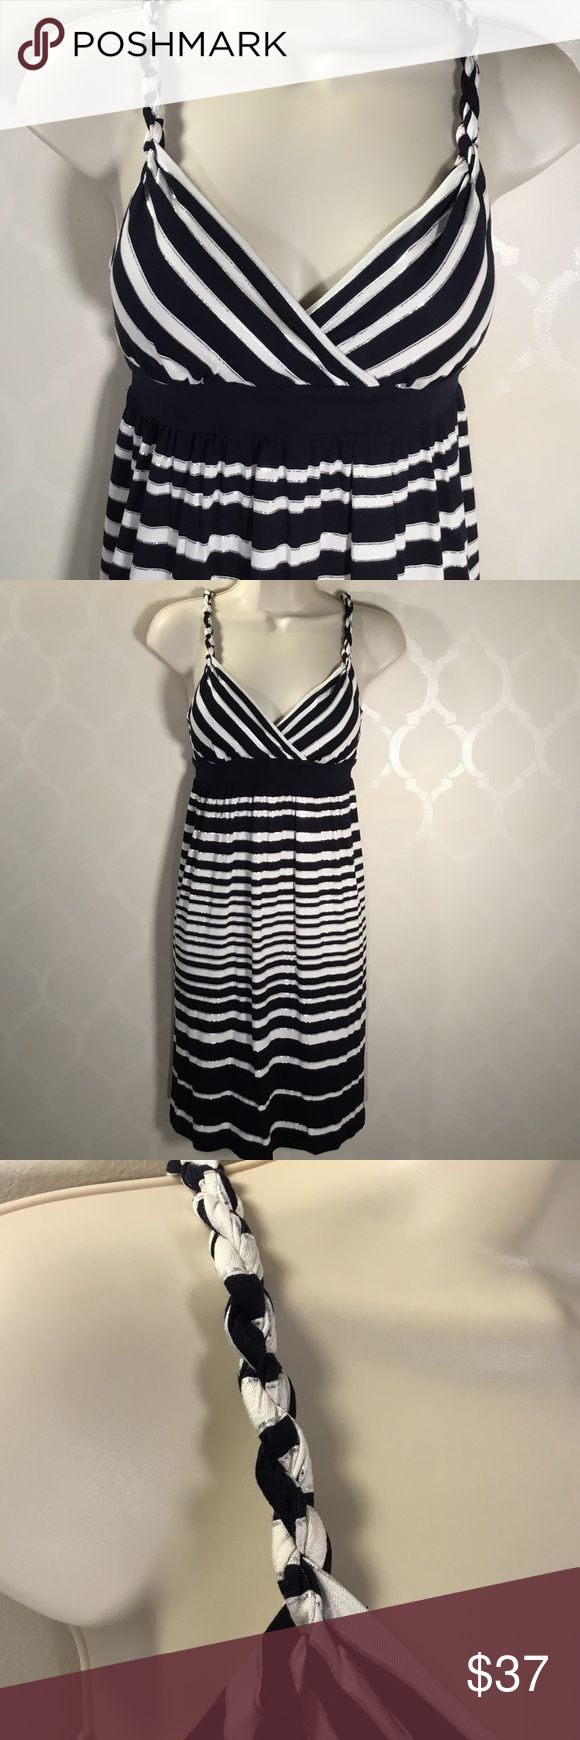 INC NAVY STRIPED DRESS INC Dress ➖ Striped in Navy, White & Silver Foil ➖ Padding in Bra ➖ Twisted Straps ➖ Pull on Style INC International Concepts Dresses